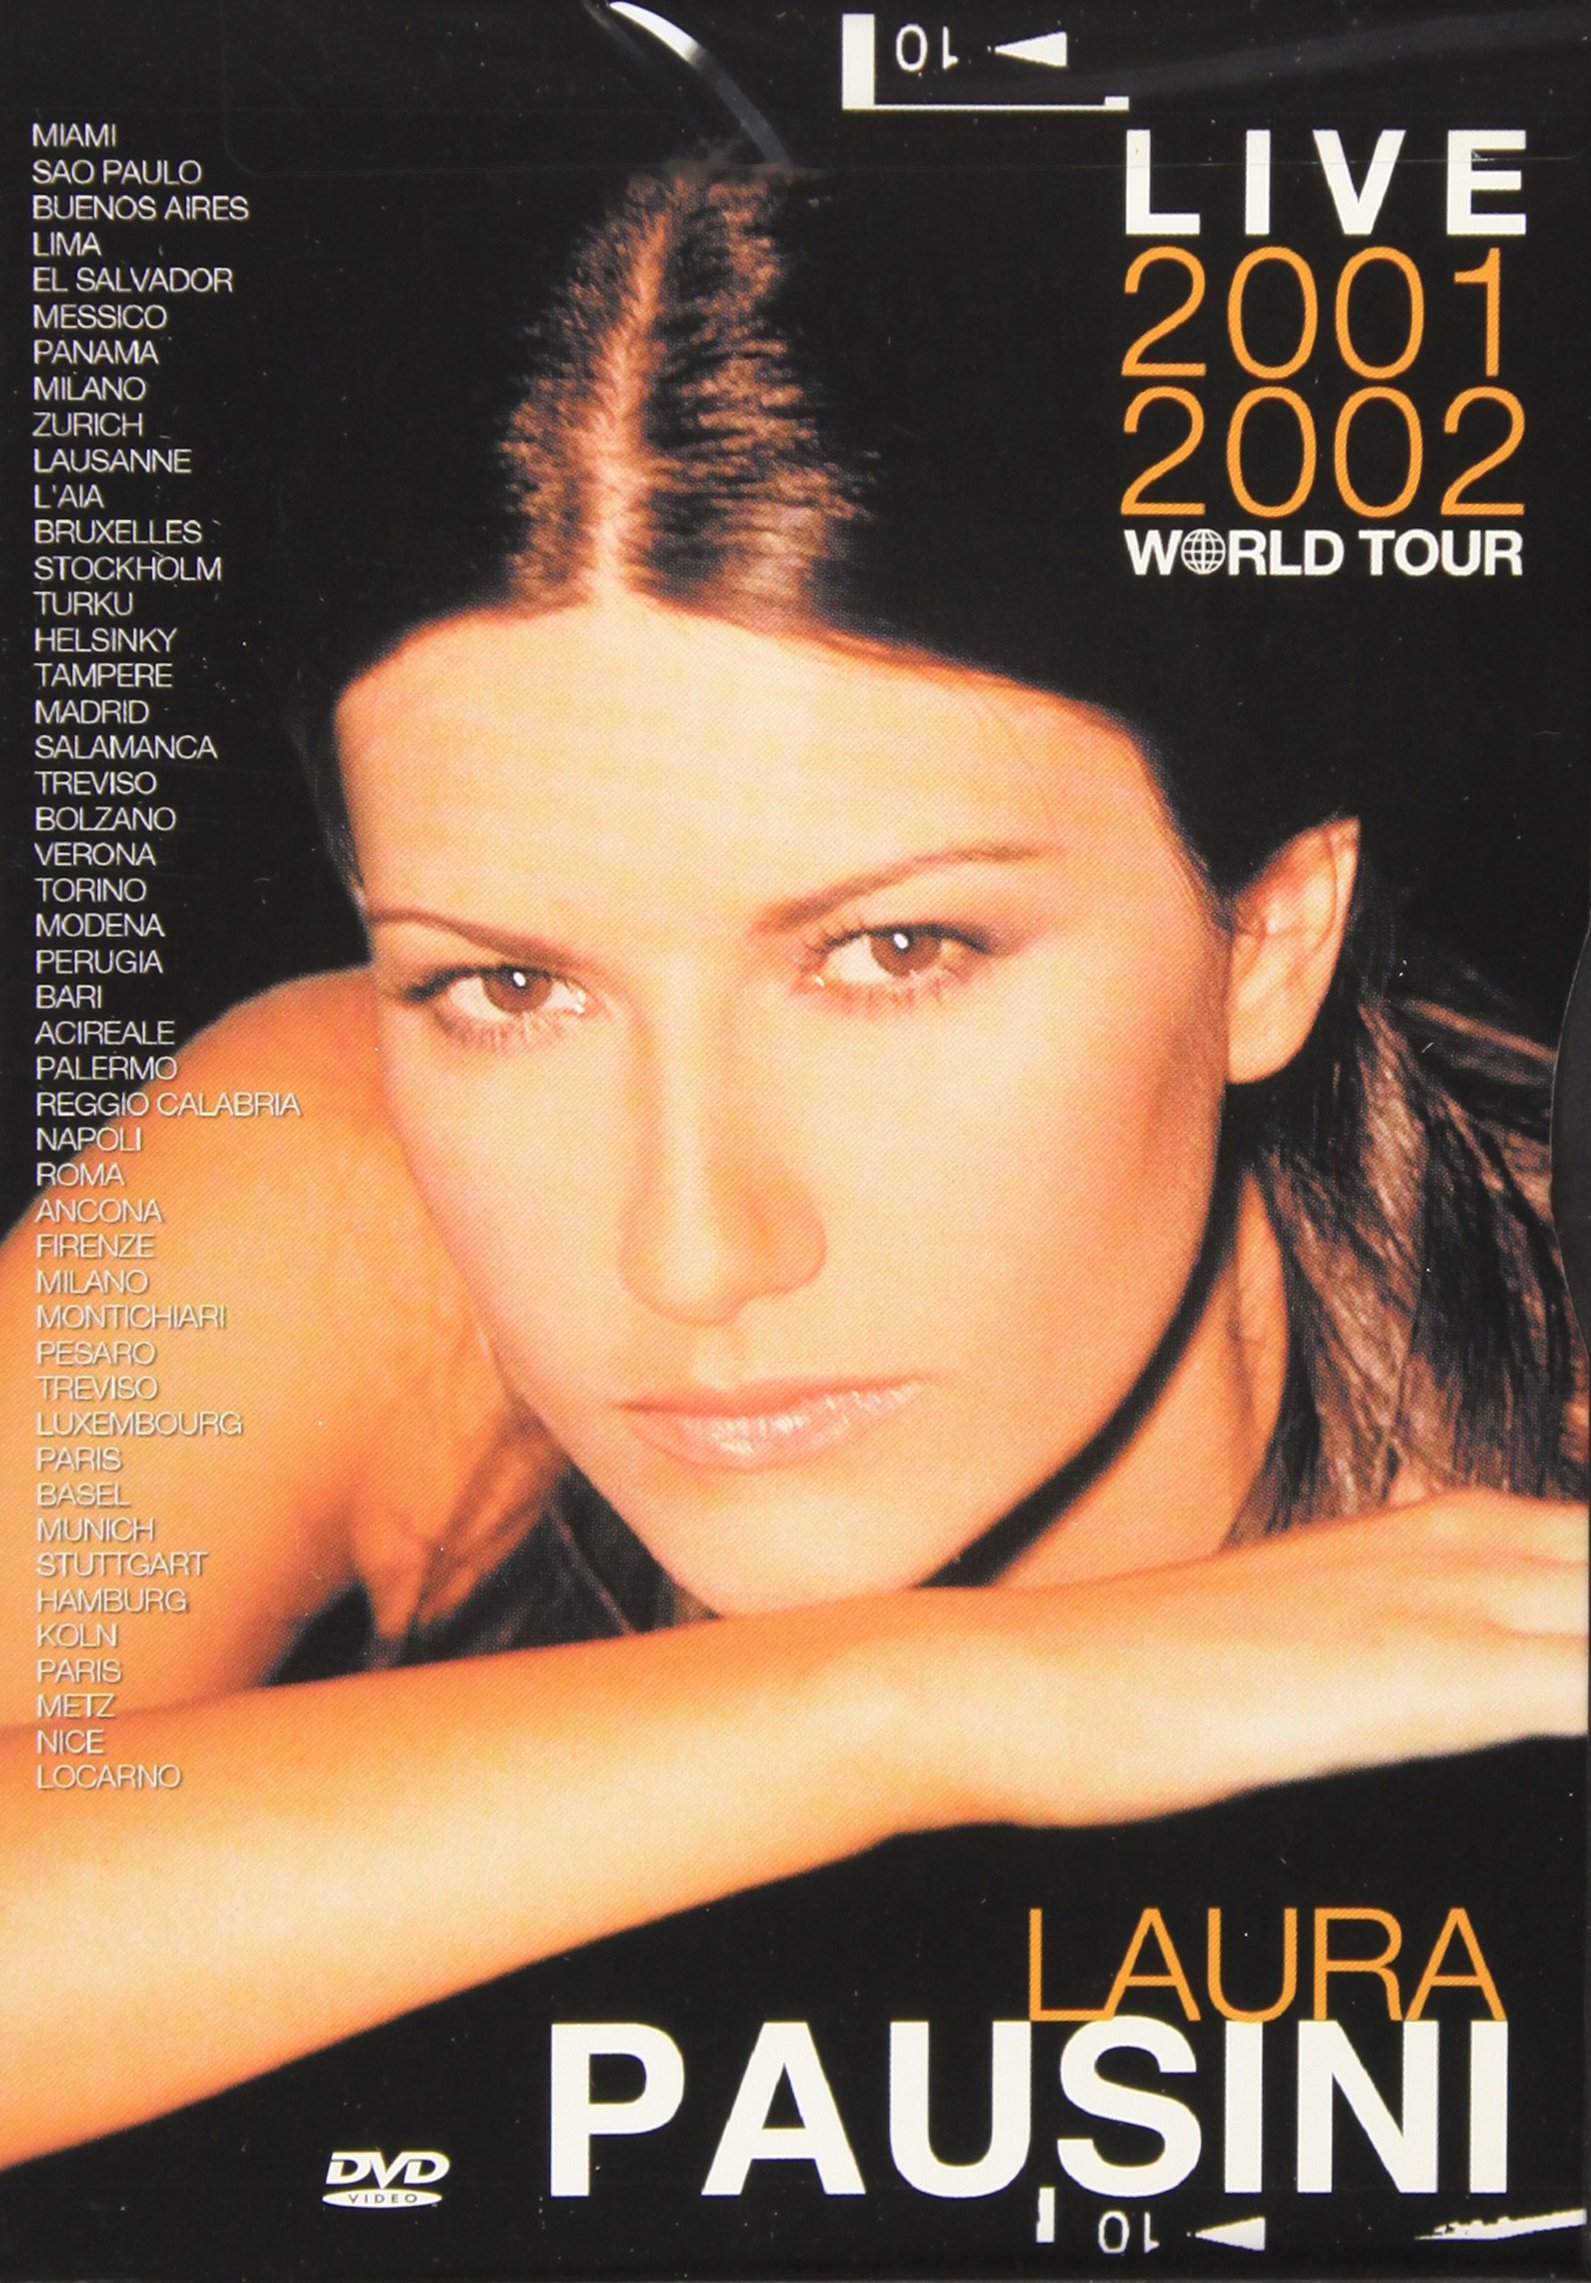 Laura Pausini: Live 2001-2002 World Tour by Warner Music Latina